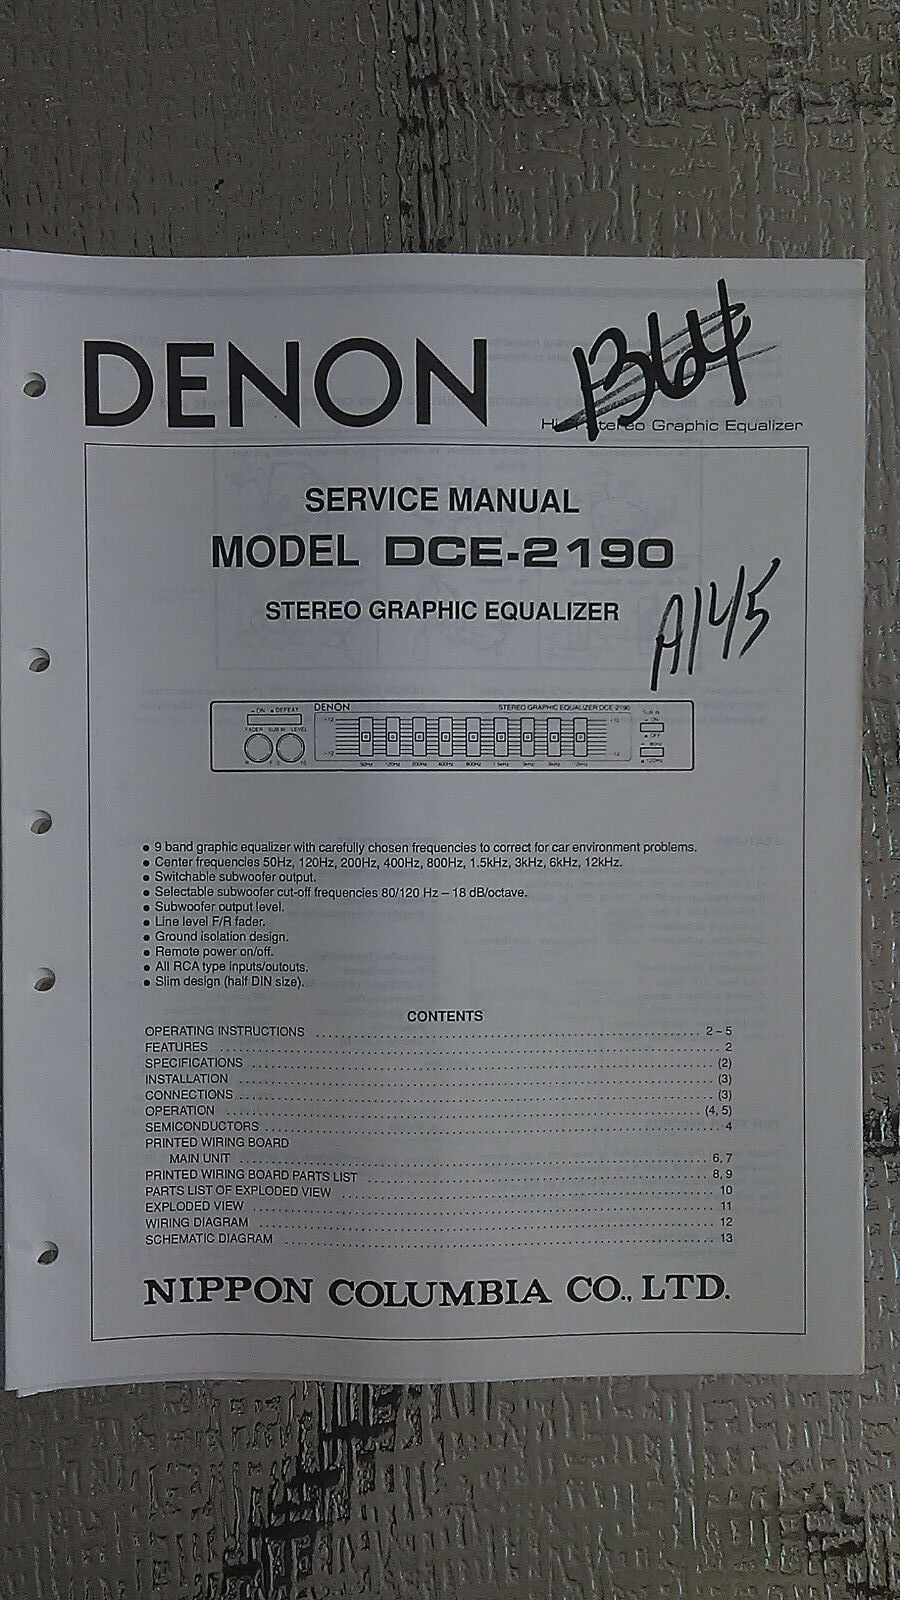 Denon Dce 2190 Service Manual Original Repair Book Stereo Car Radio 7 Band Equalizer Auto Wires Diagram 1 Of 1free Shipping